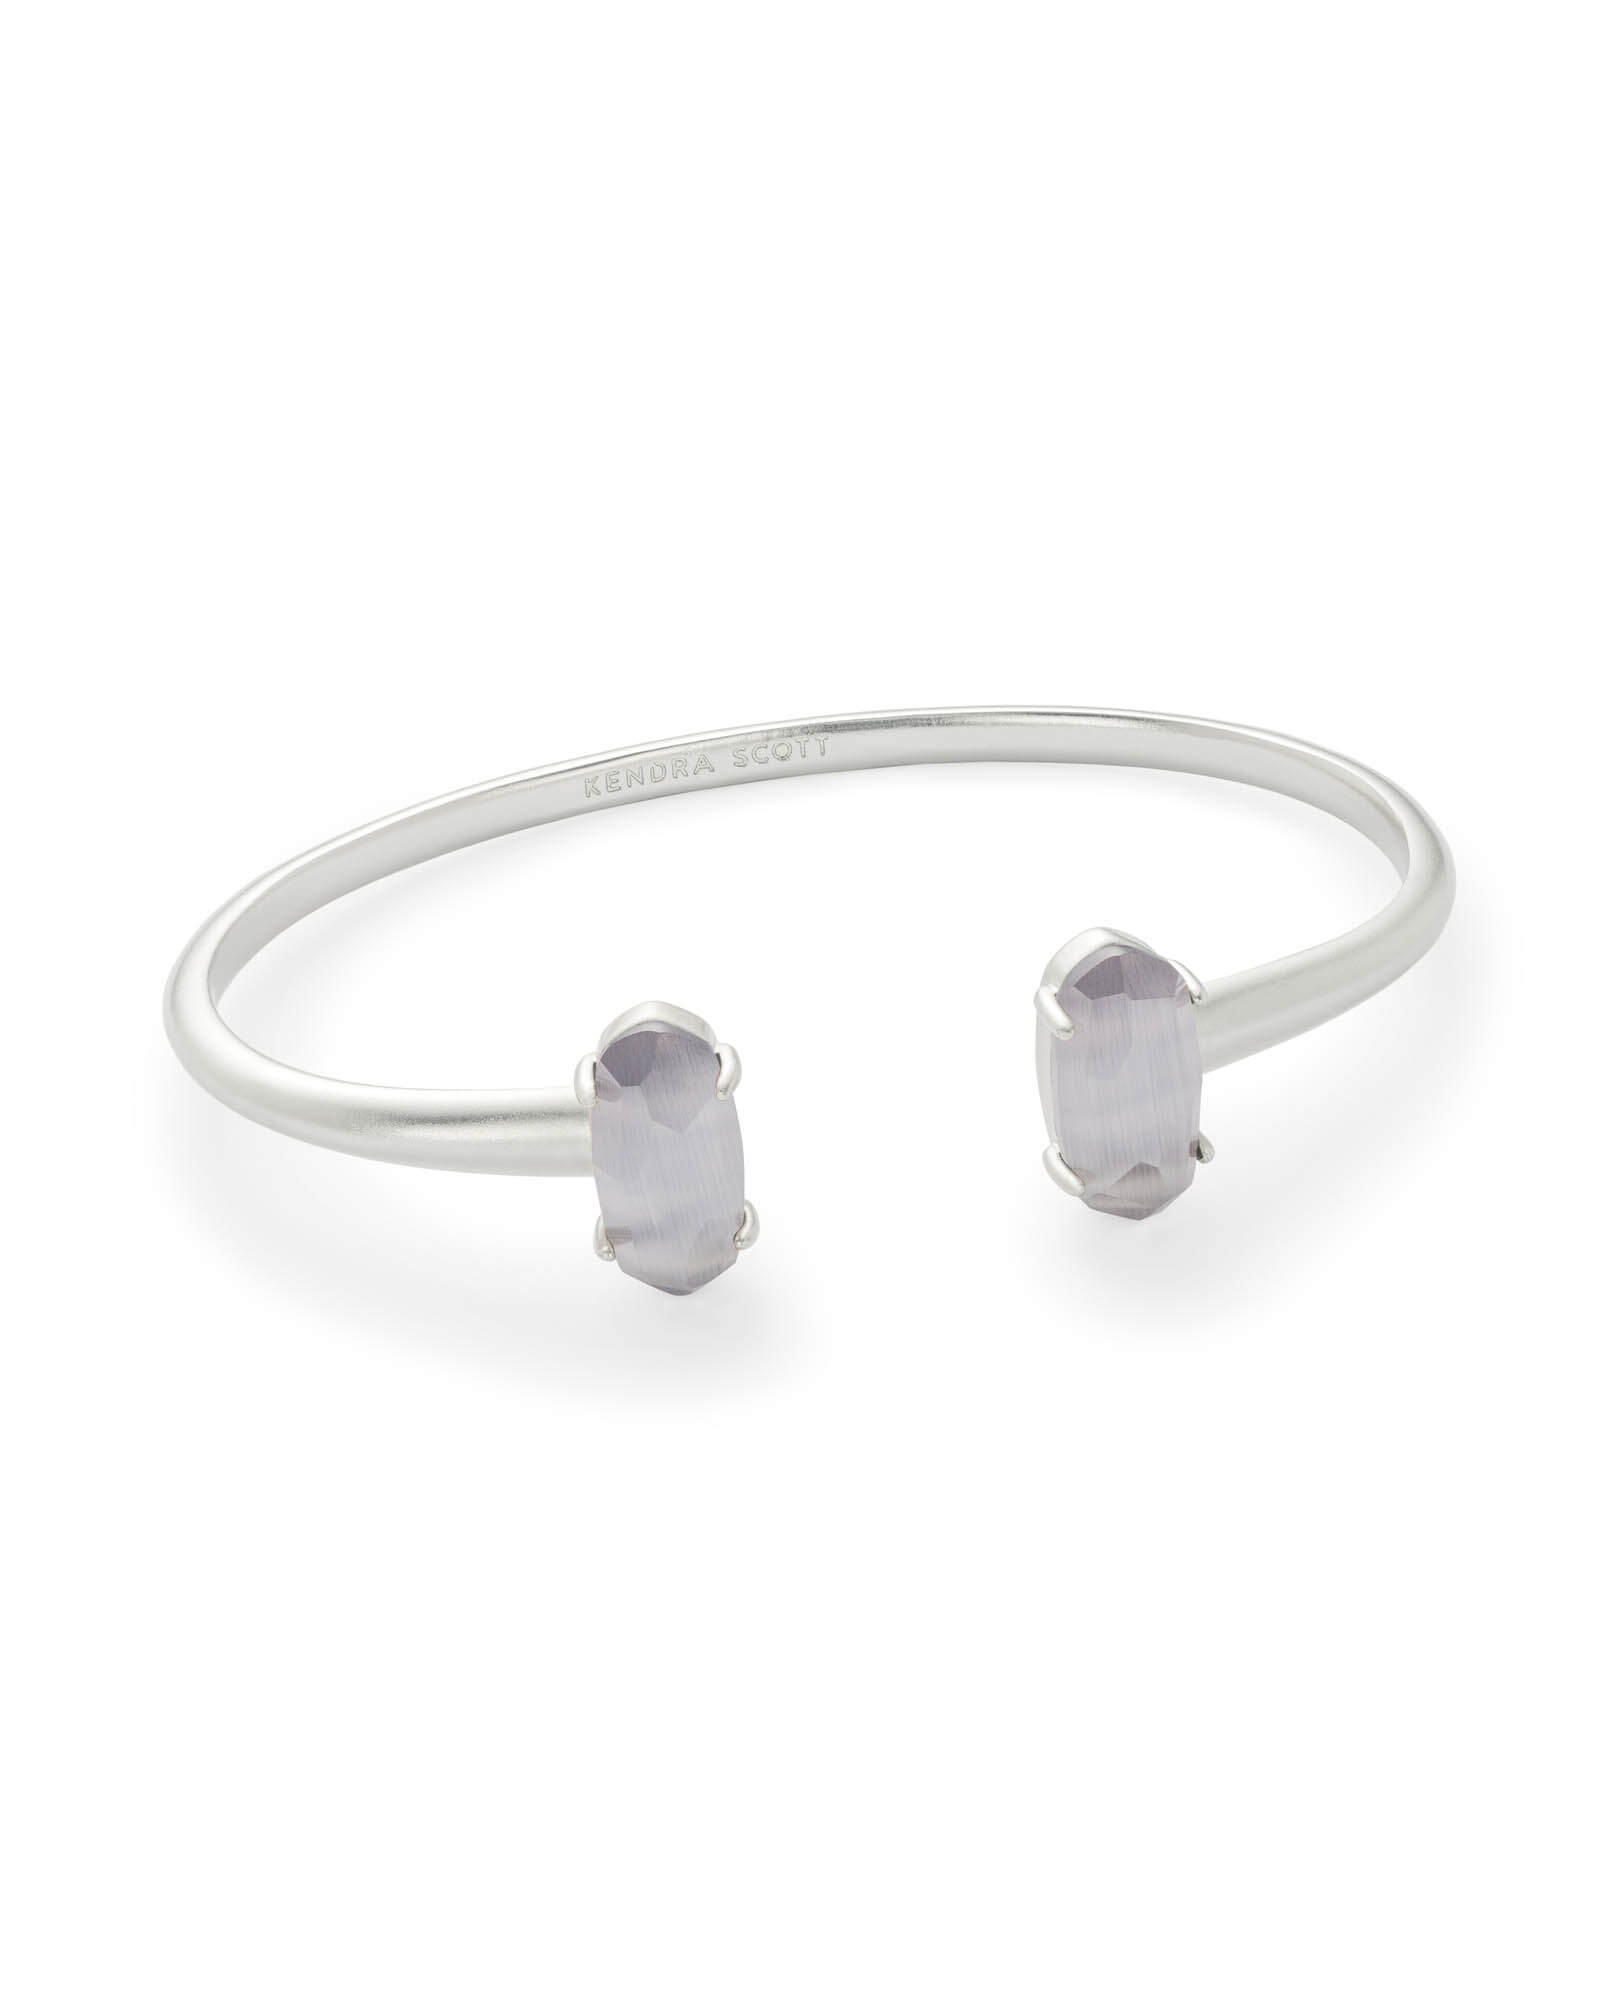 Edie Silver Cuff Bracelet in Slate Cats Eye